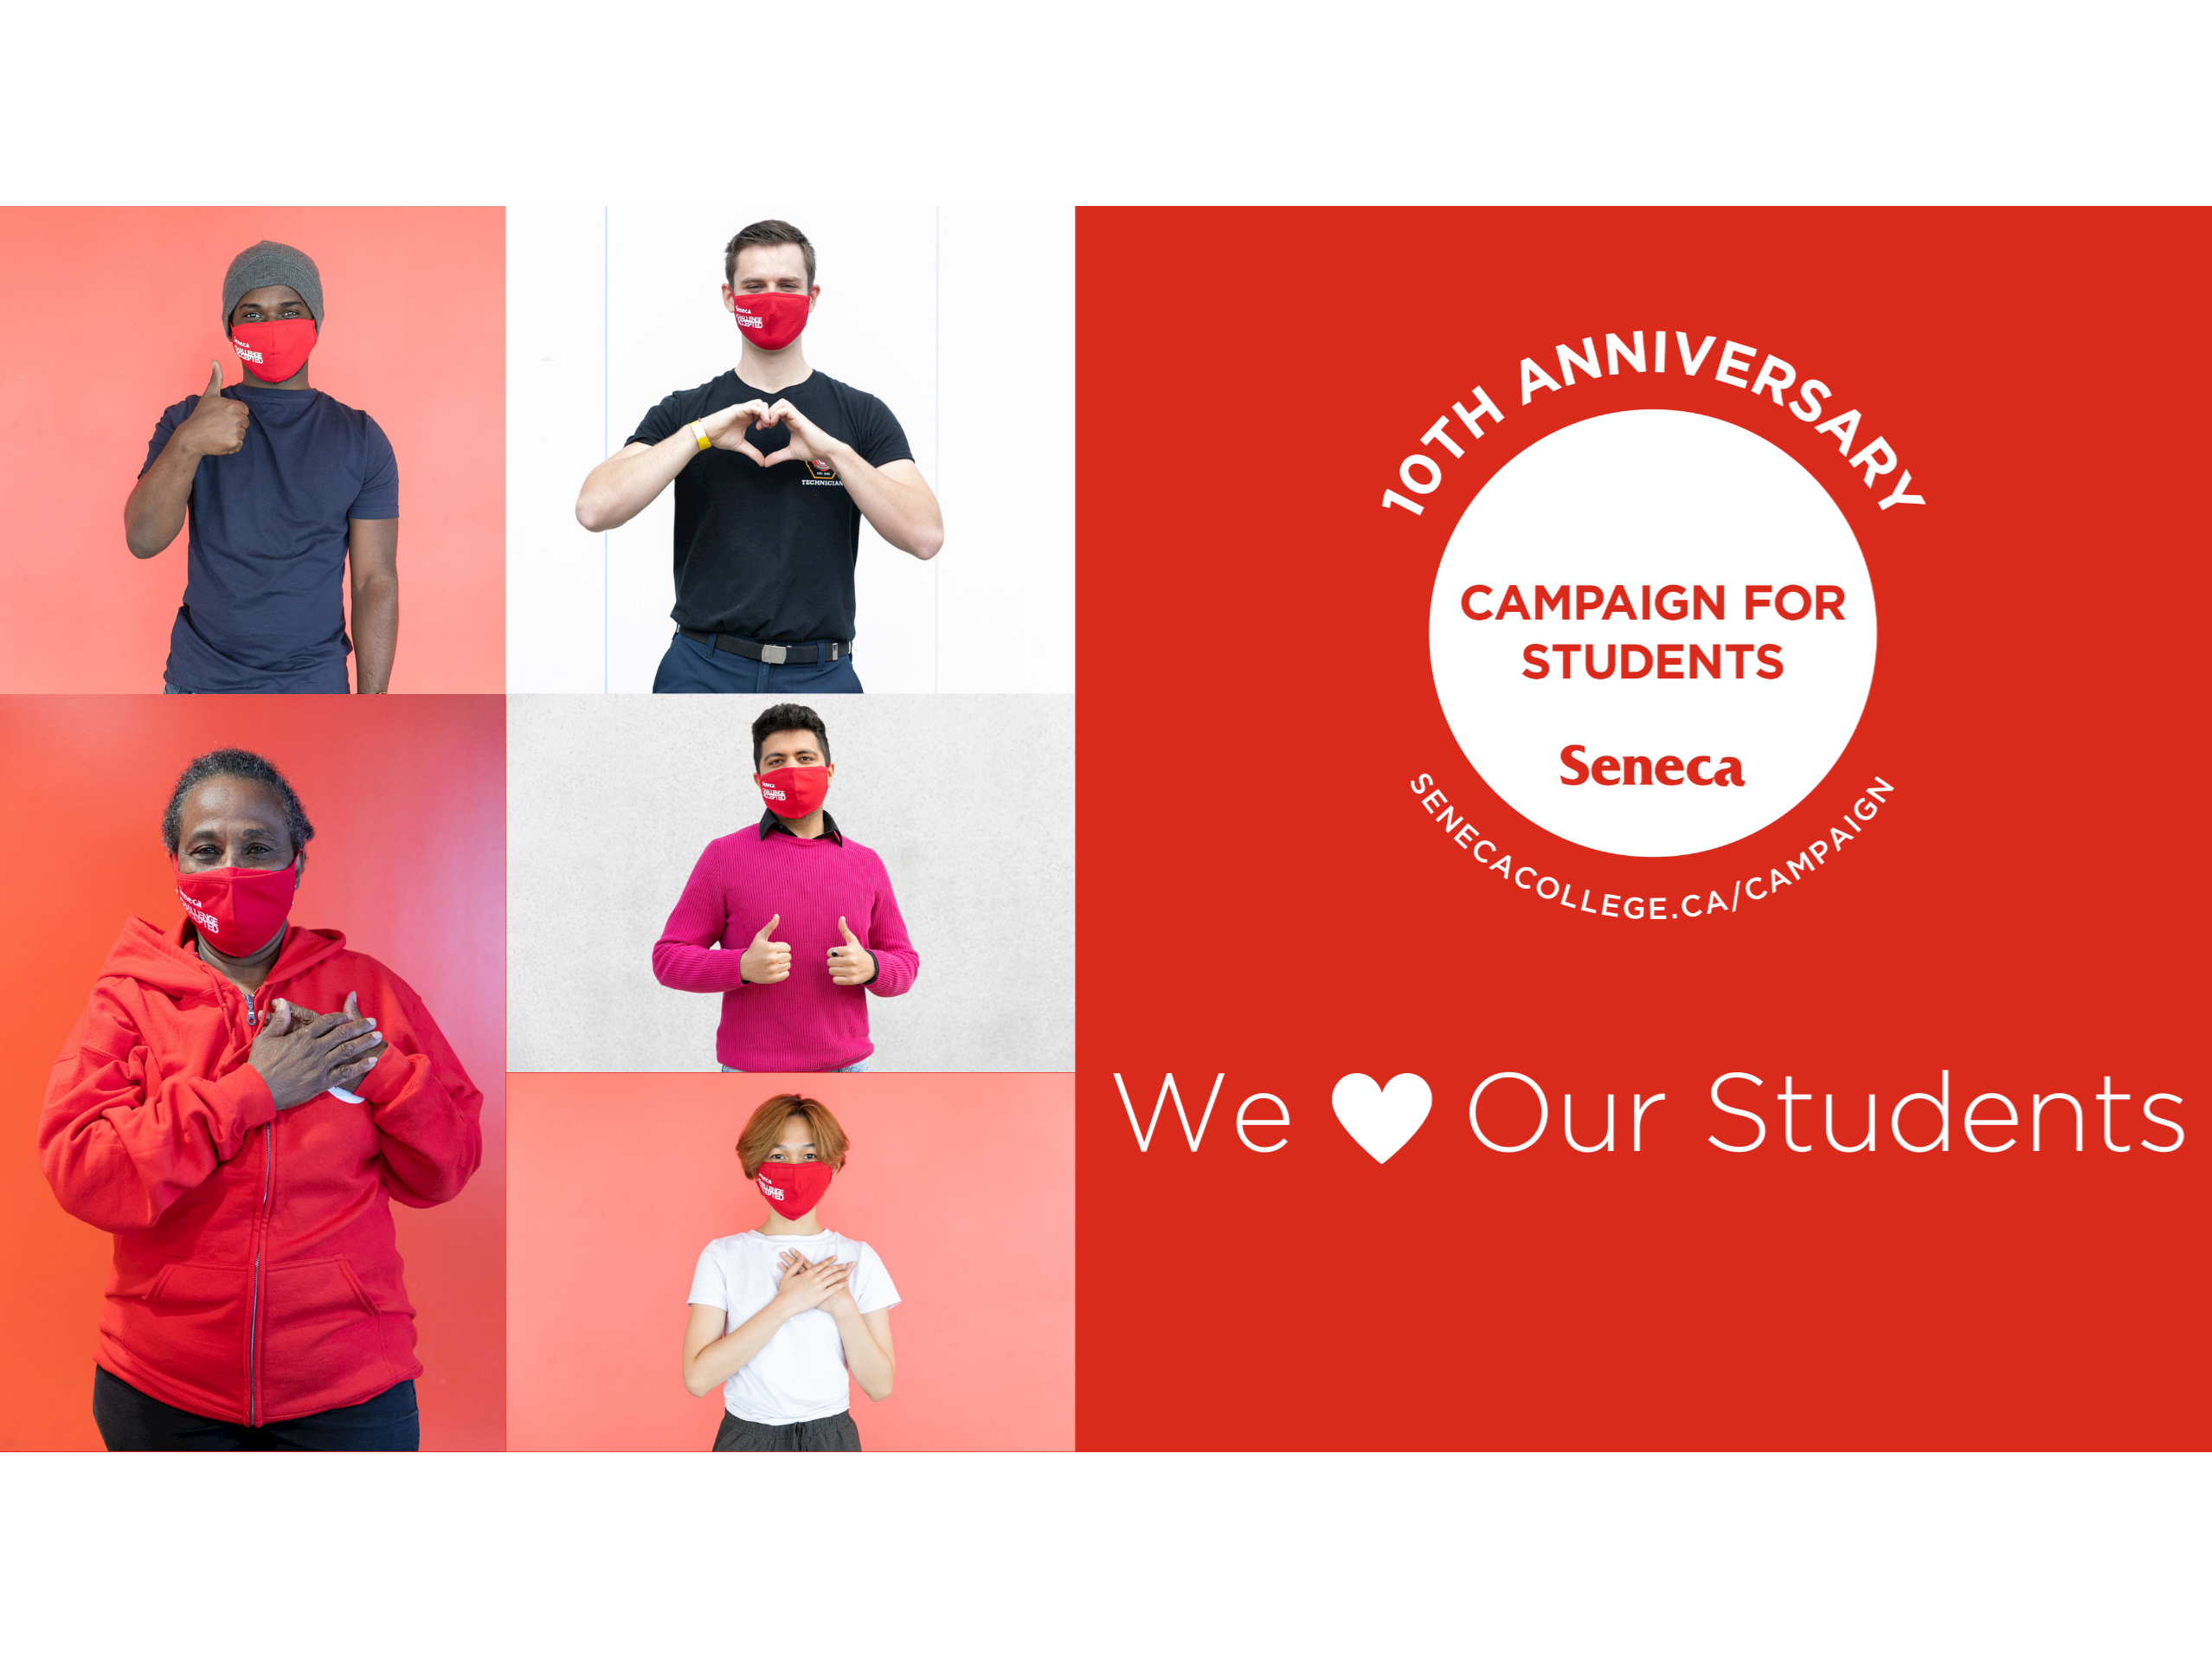 Campaign for Students turns 10